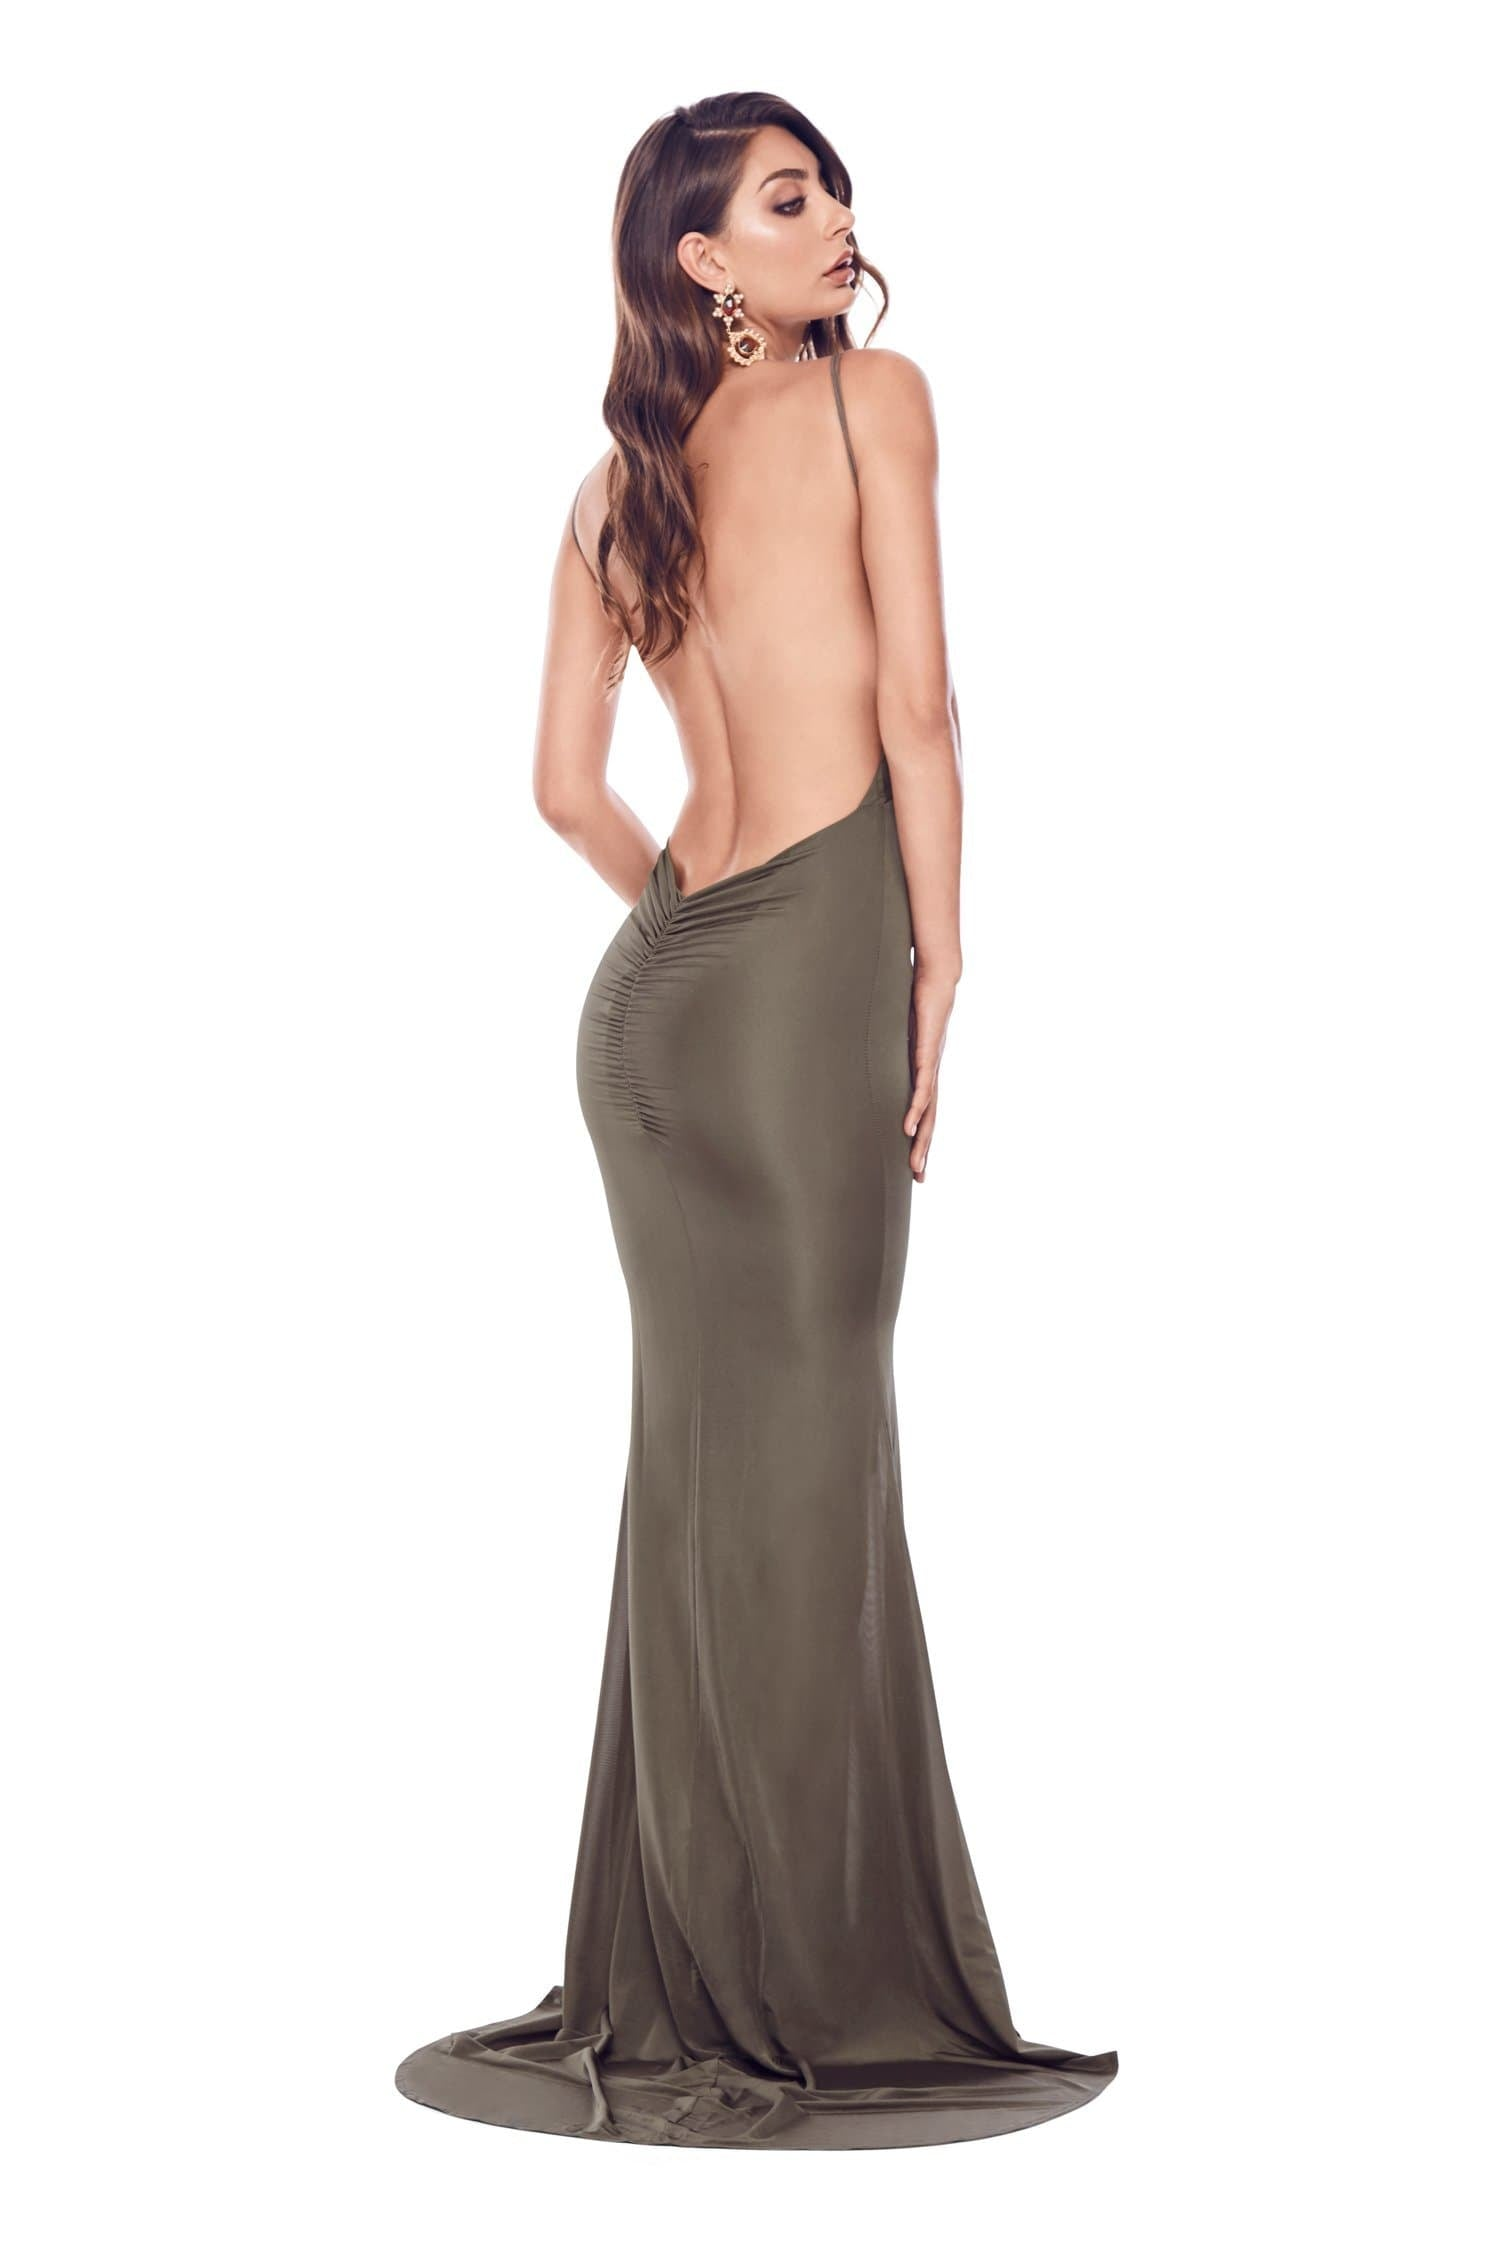 Selina - Olive Backless Jersey Plunge Neck Gown with Mermaid Train